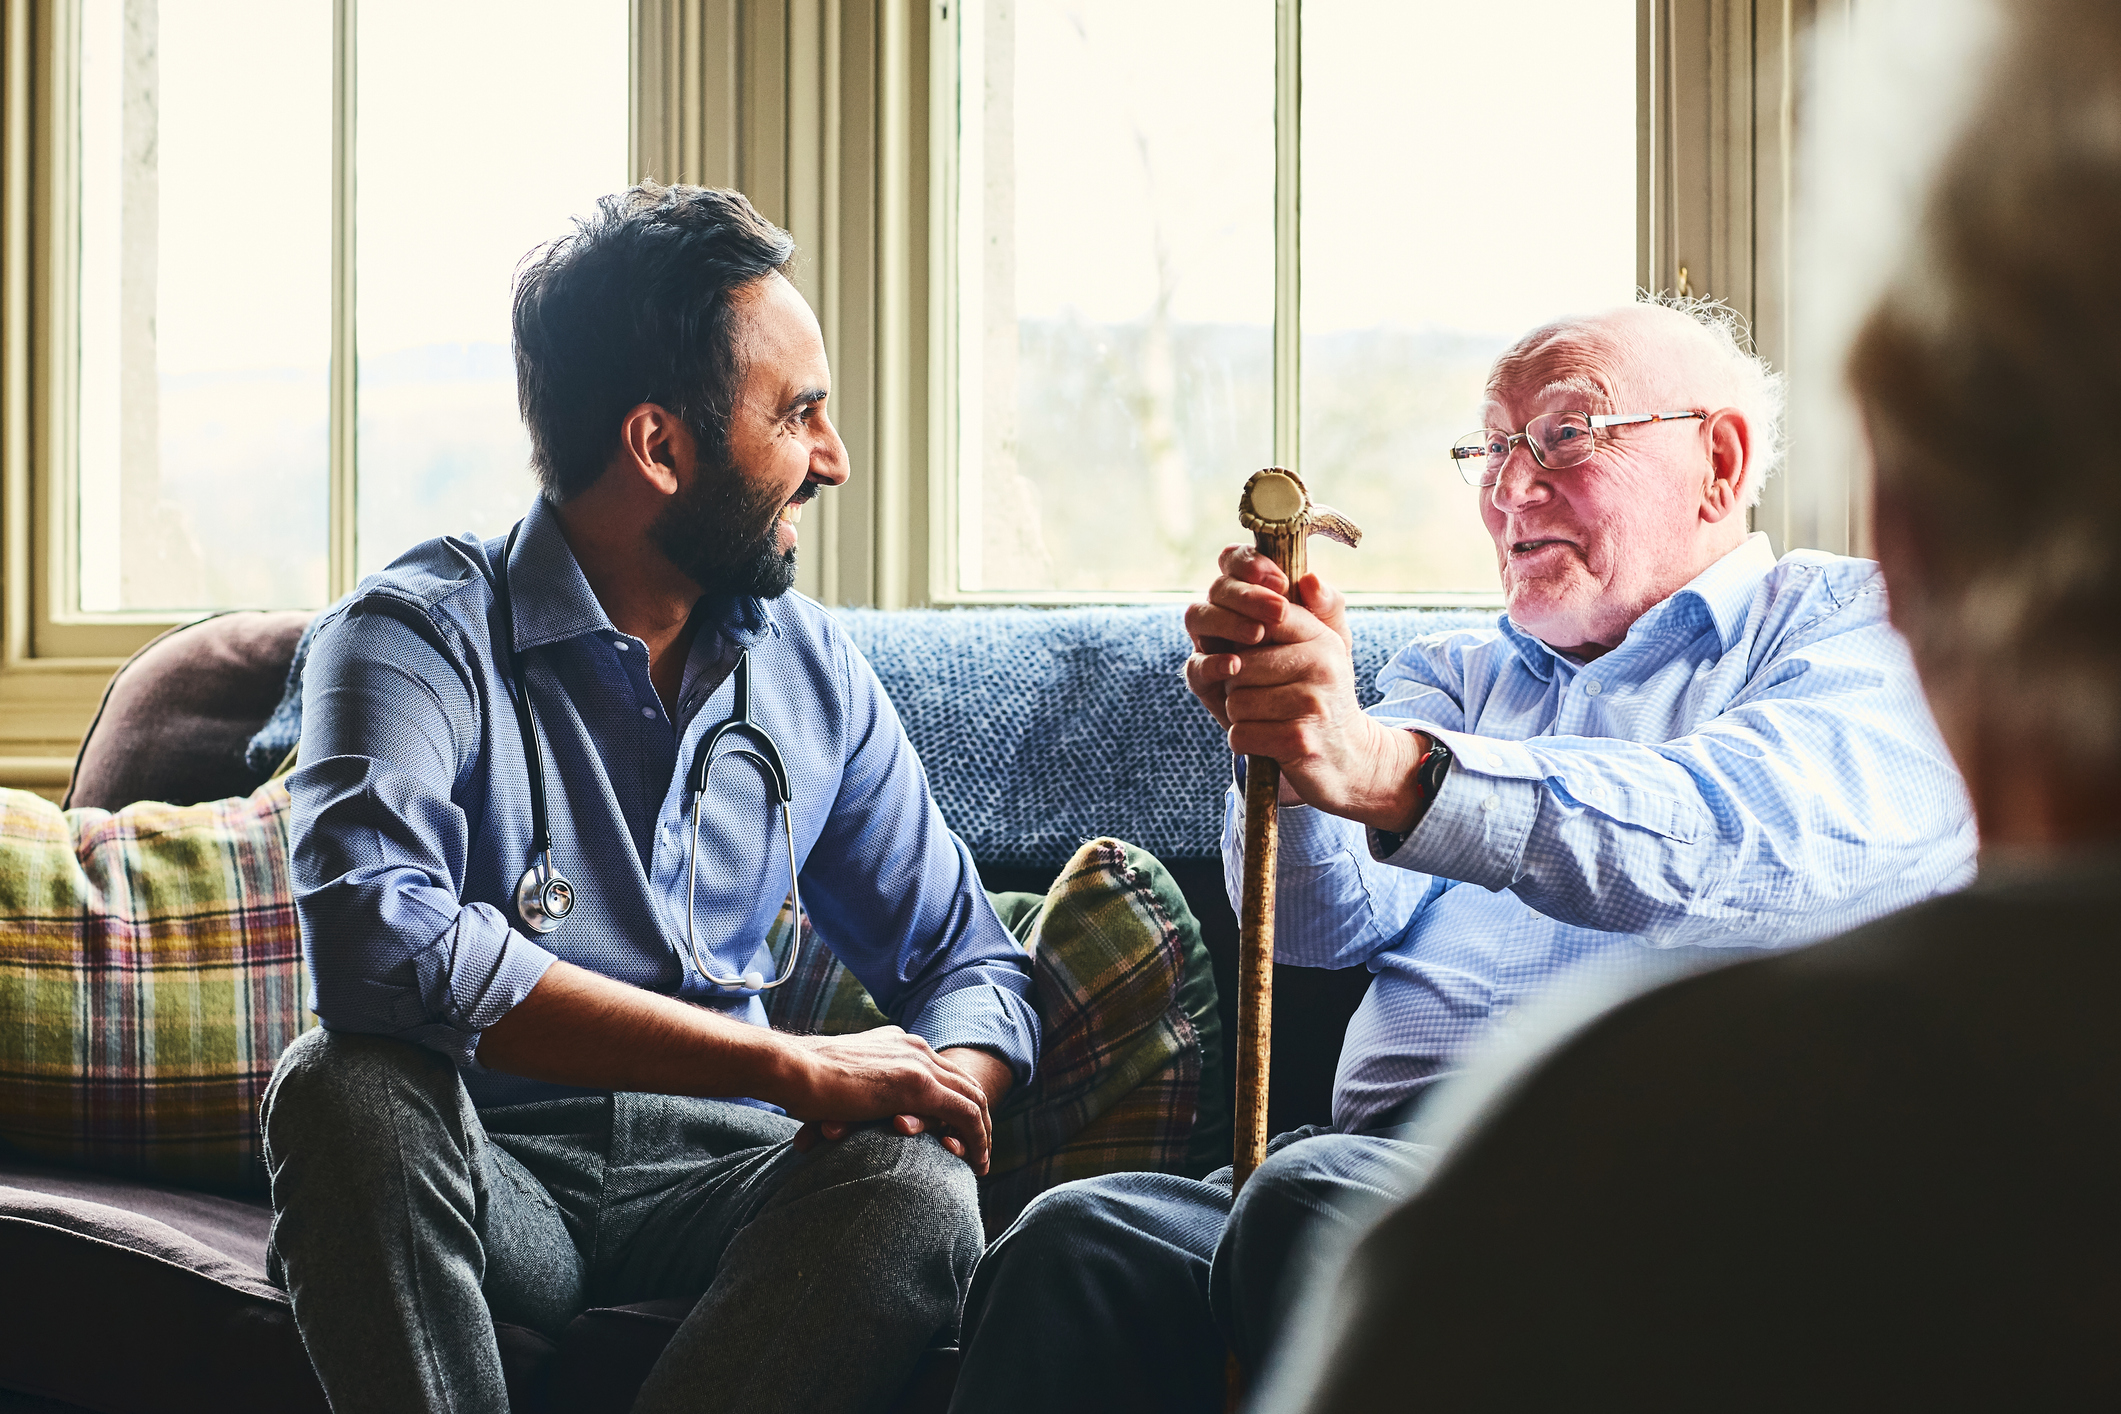 Male physician visiting an elderly man for an at-home visit